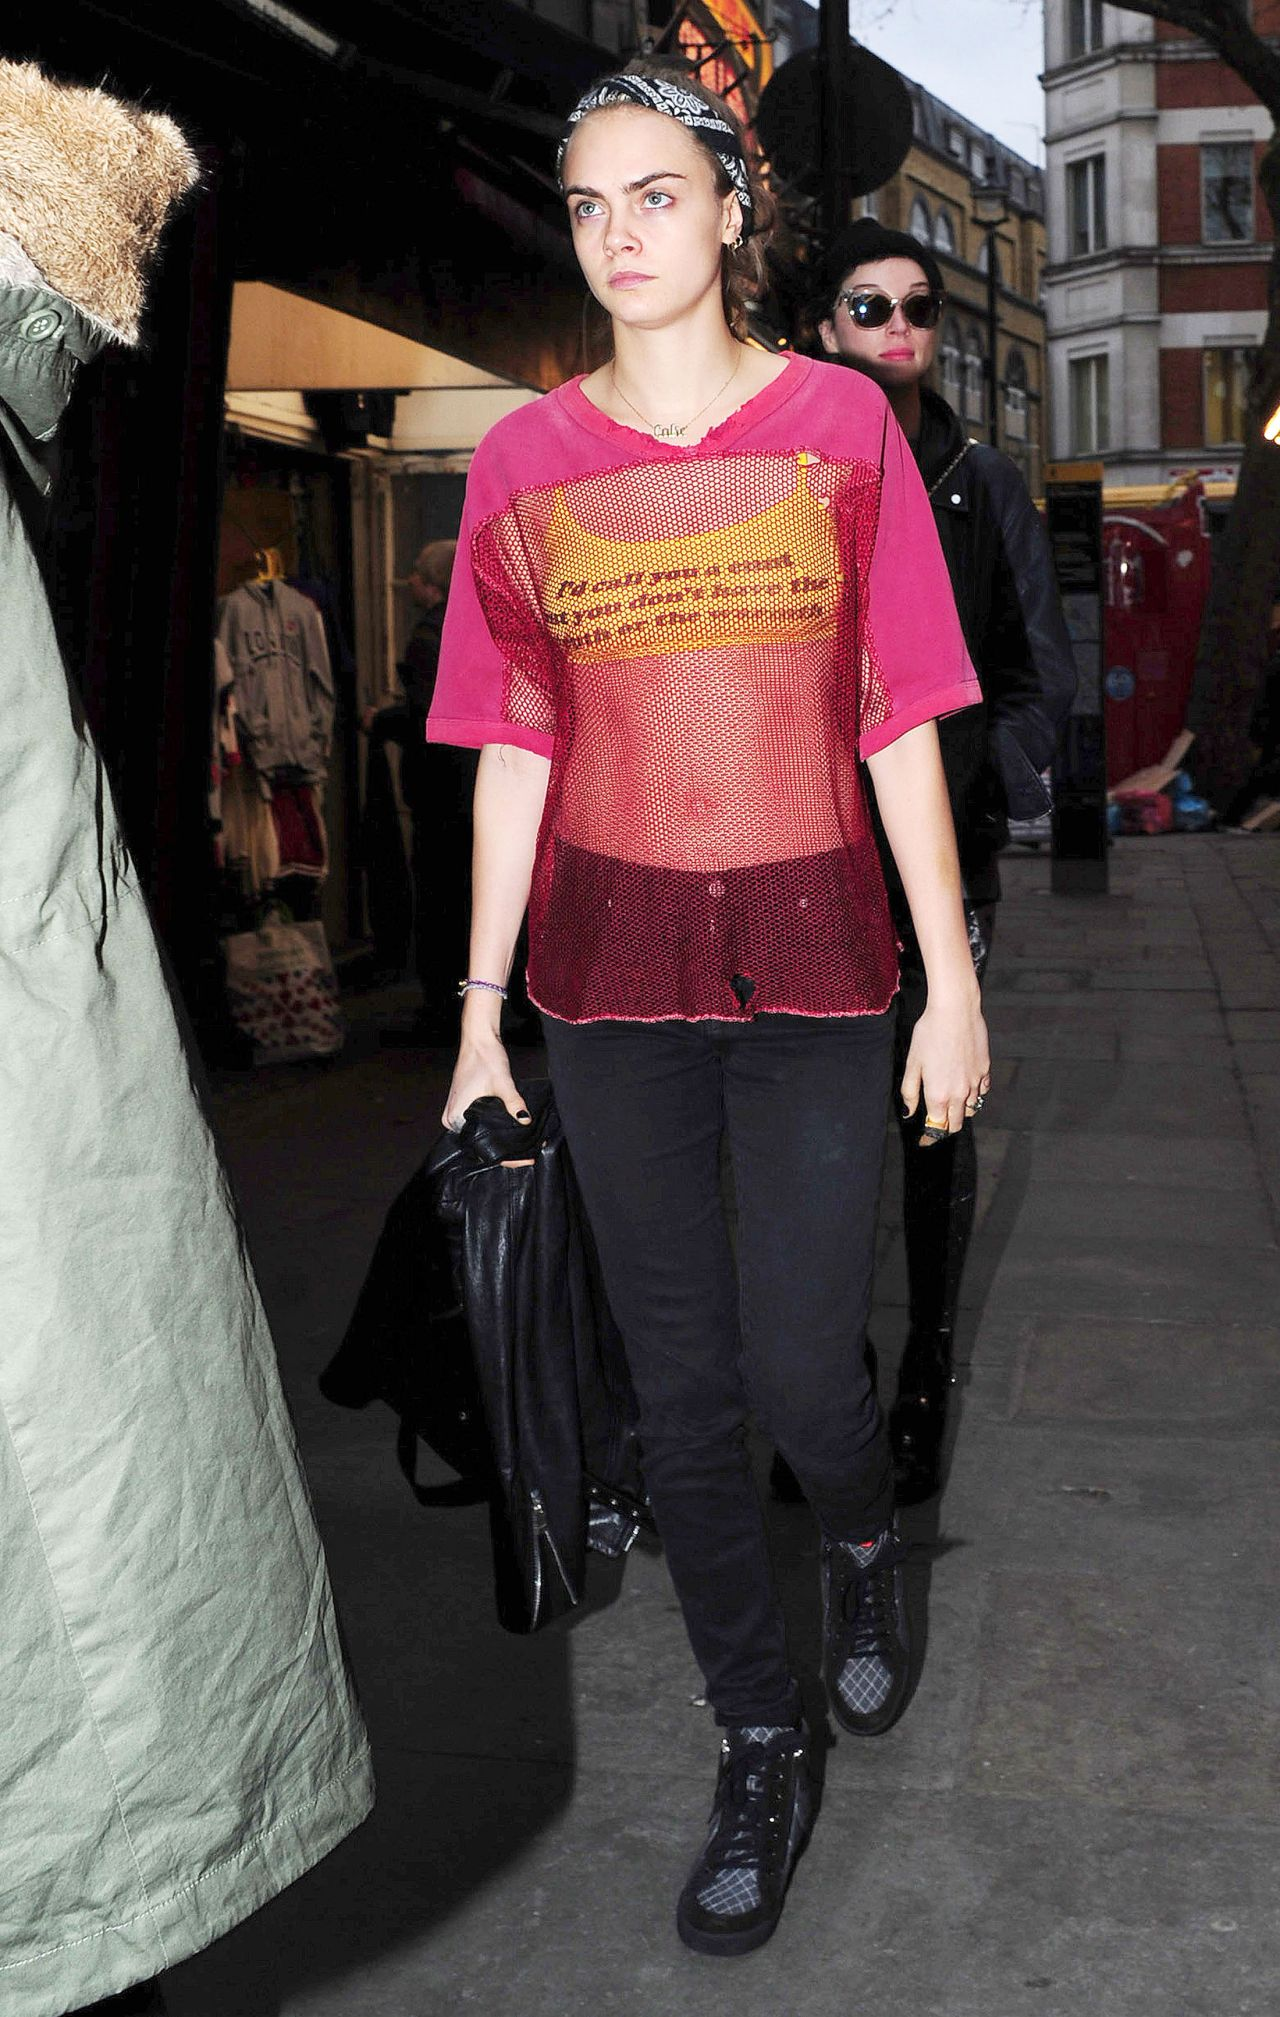 Cara Delevingne Fashion Style - Leaving Her Hotel in NYC 8